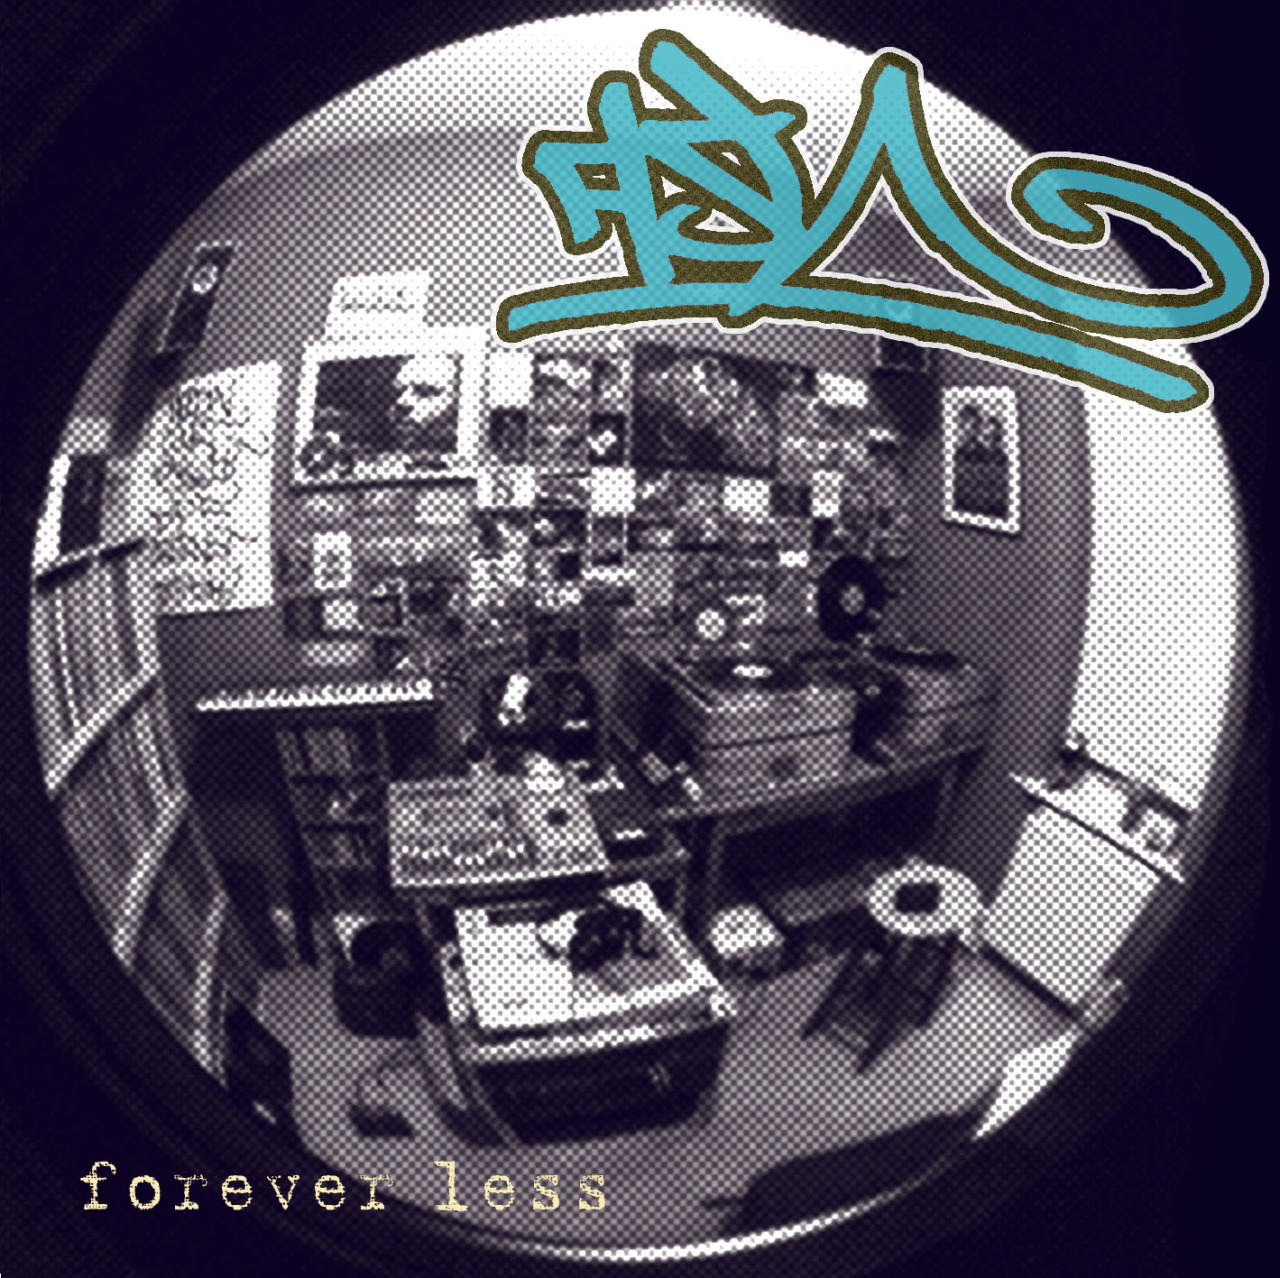 FOREVER LESS  Get yourself a selection of  badly mixed   LO-FI  rap by my mum's favourite producer, dj, graff artist and all round bald-headed, chain-smoking, drunken wasteman and Michael Stipe impersonator, FISH.  FOREVER LESS features verses from CAPPO, DOCTOR ZOOTS, ELLIOT FRESH and TABLEEK out of MASPYKE and there's a few instrumentals to bulk things up a bit.  Well worth a quid and/or a couple of Superking.   Get yours for free  HERE